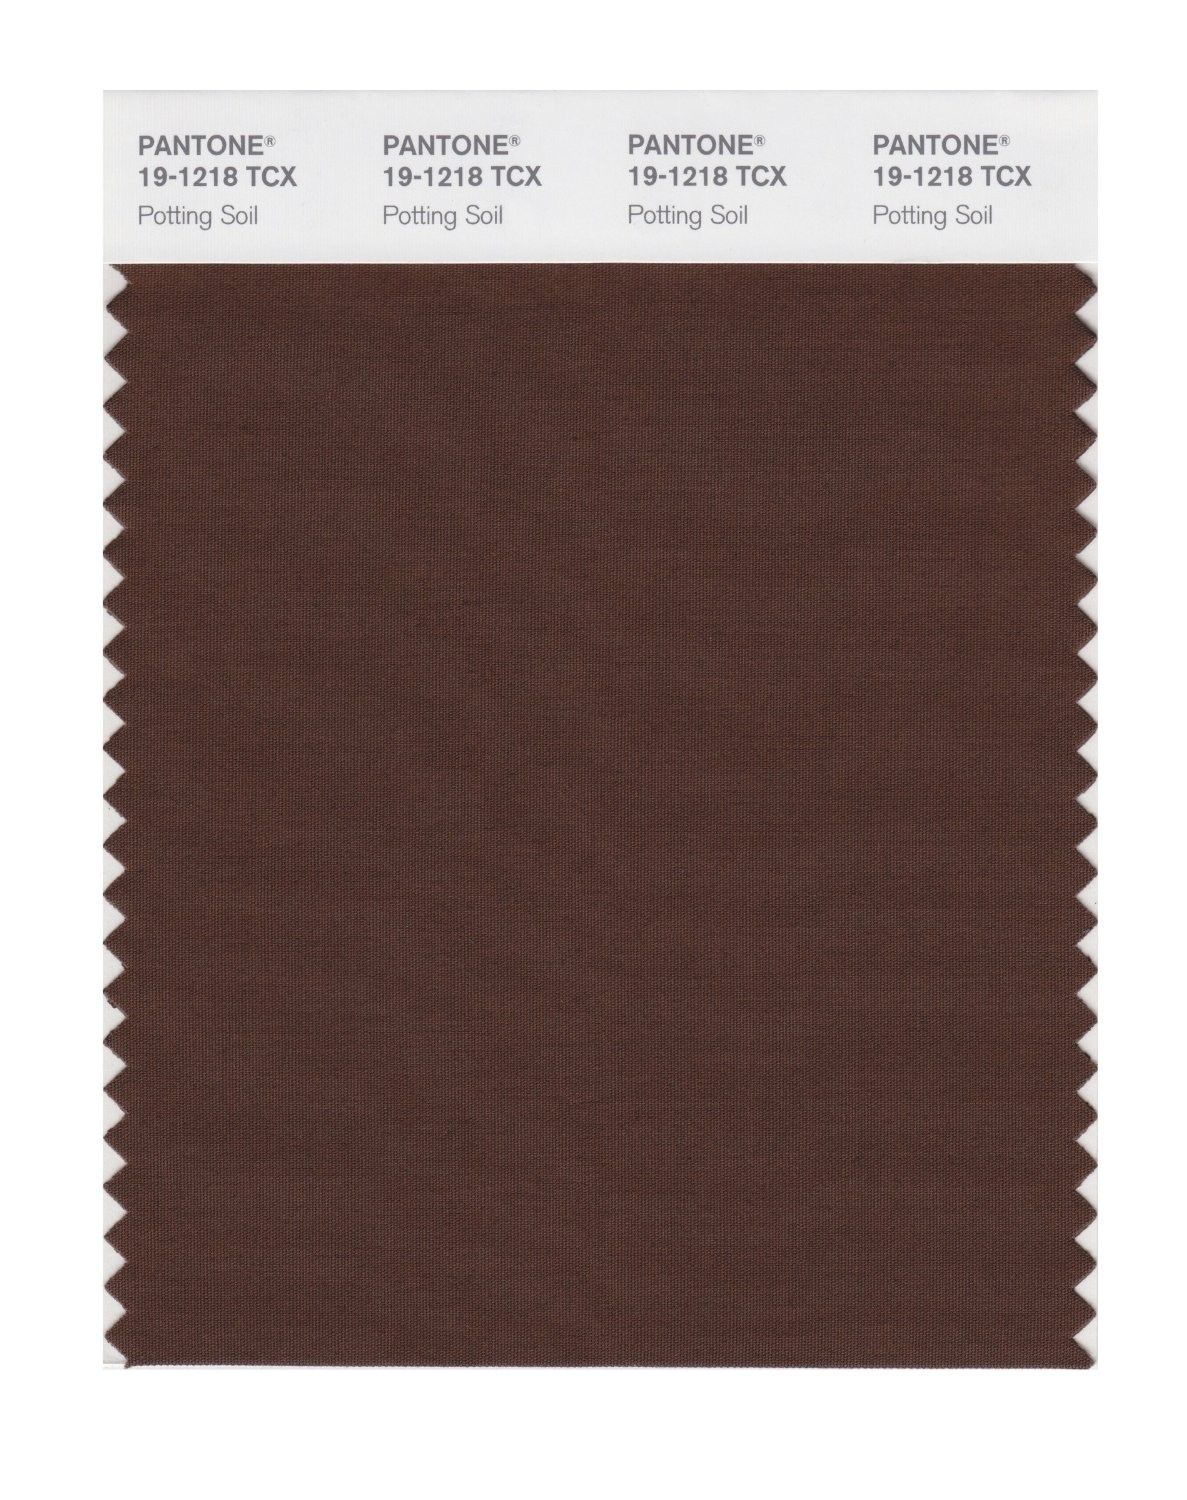 Pantone 19-1218 TCX Swatch Card Potting Soil